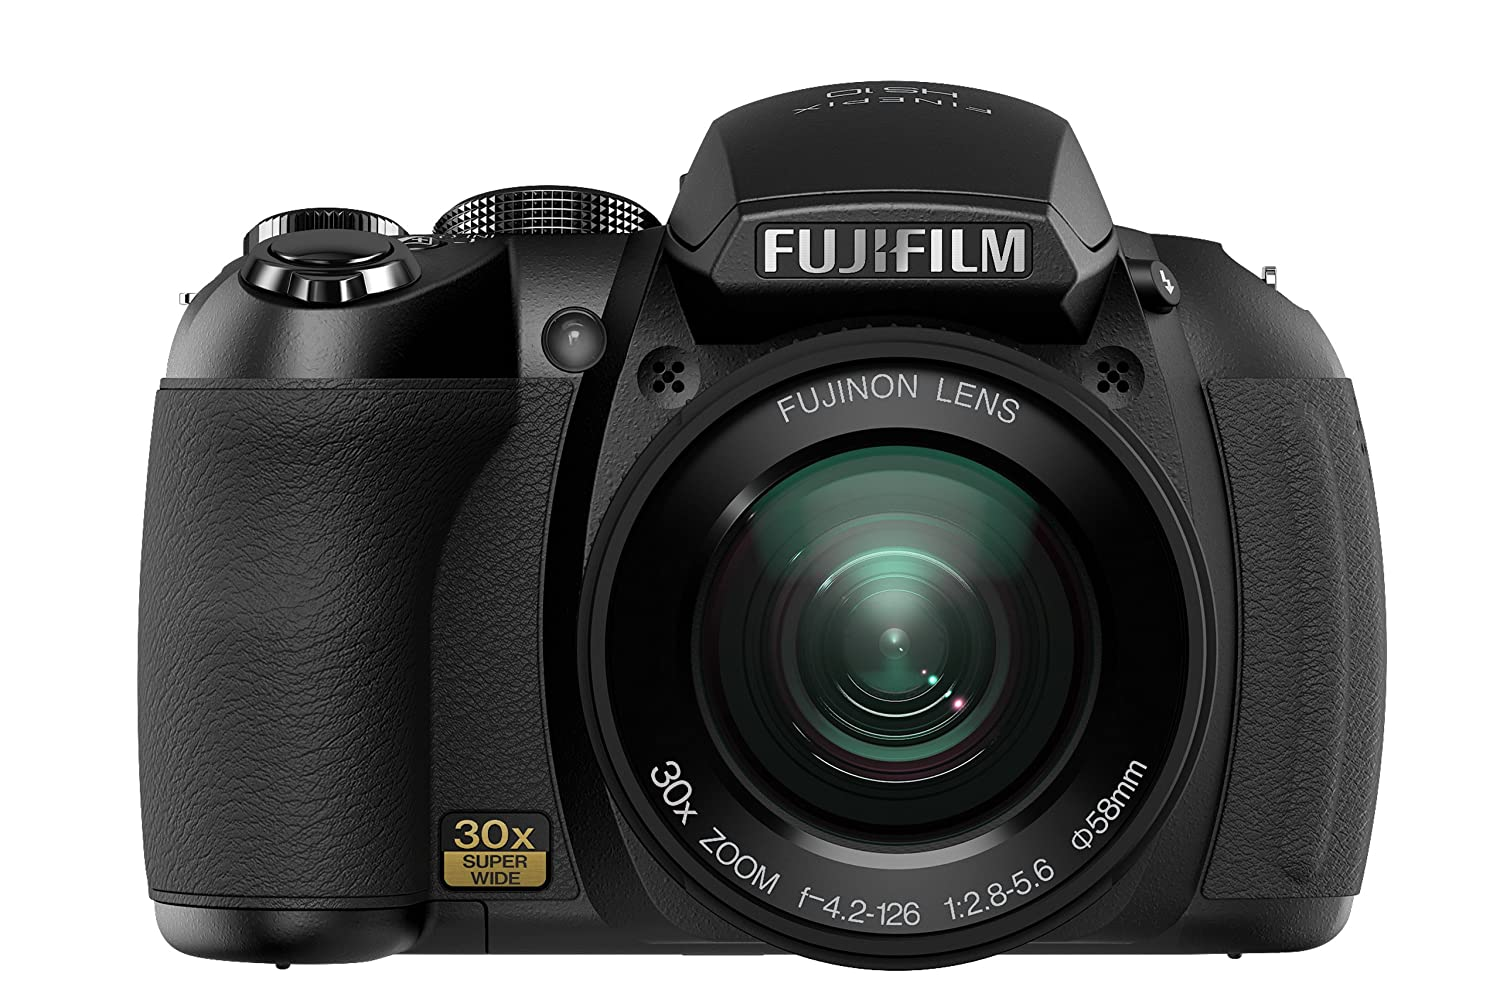 Amazon.com : Fujifilm FinePix HS10 10 MP CMOS Digital Camera with 30x Wide  Angle Optical Zoom and 3-Inch LCD : Point And Shoot Digital Cameras :  Camera & ...